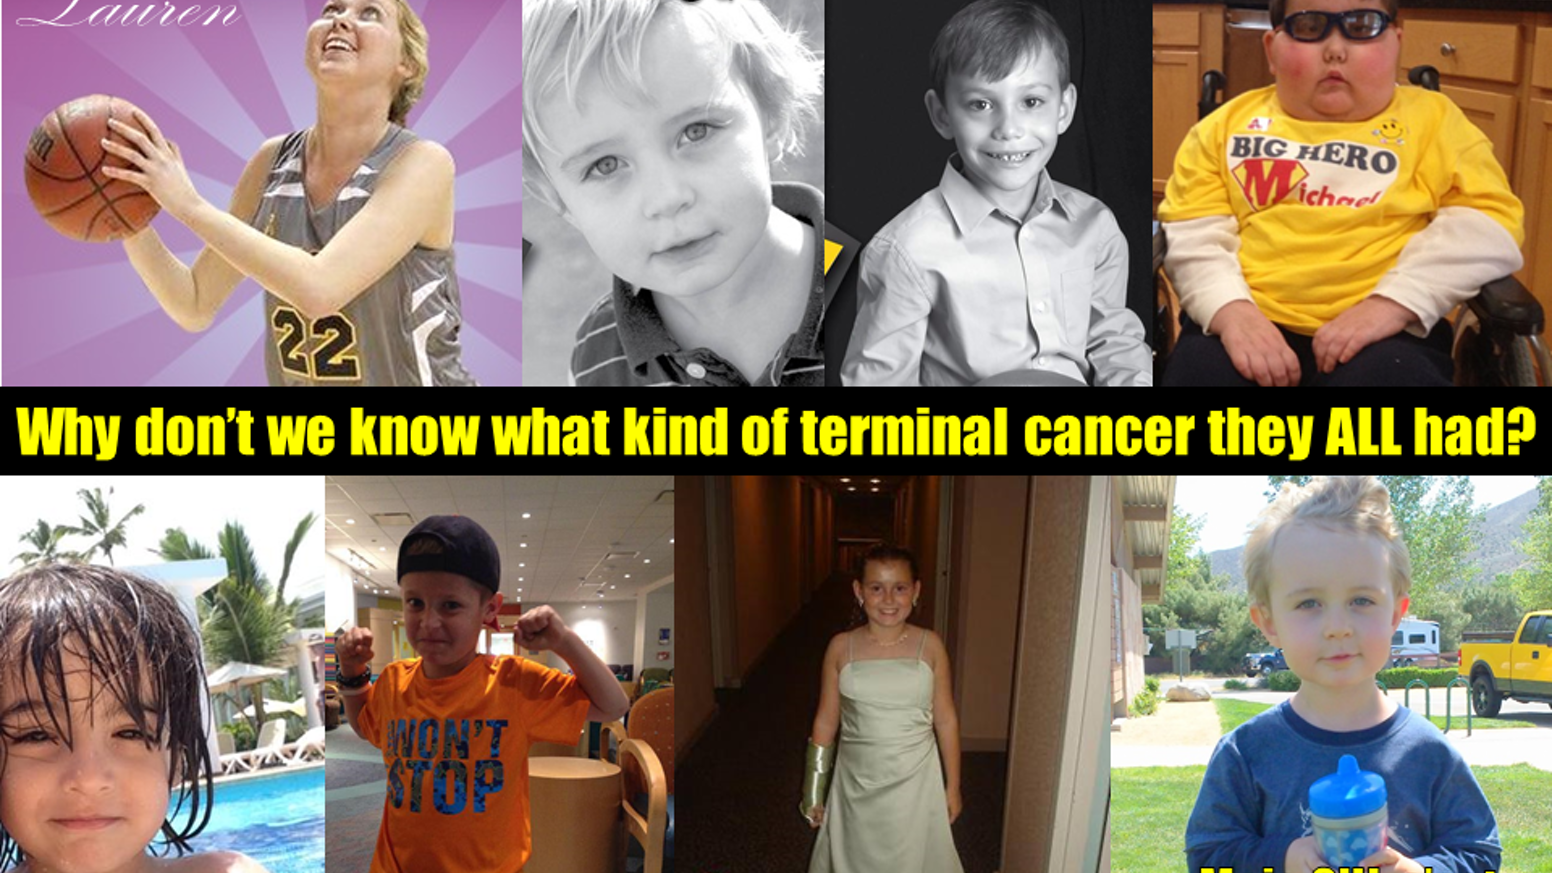 Many high-profile cases of terminal childhood cancer in the news media this year have been DIPG, yet it remains unknown and unspoken.